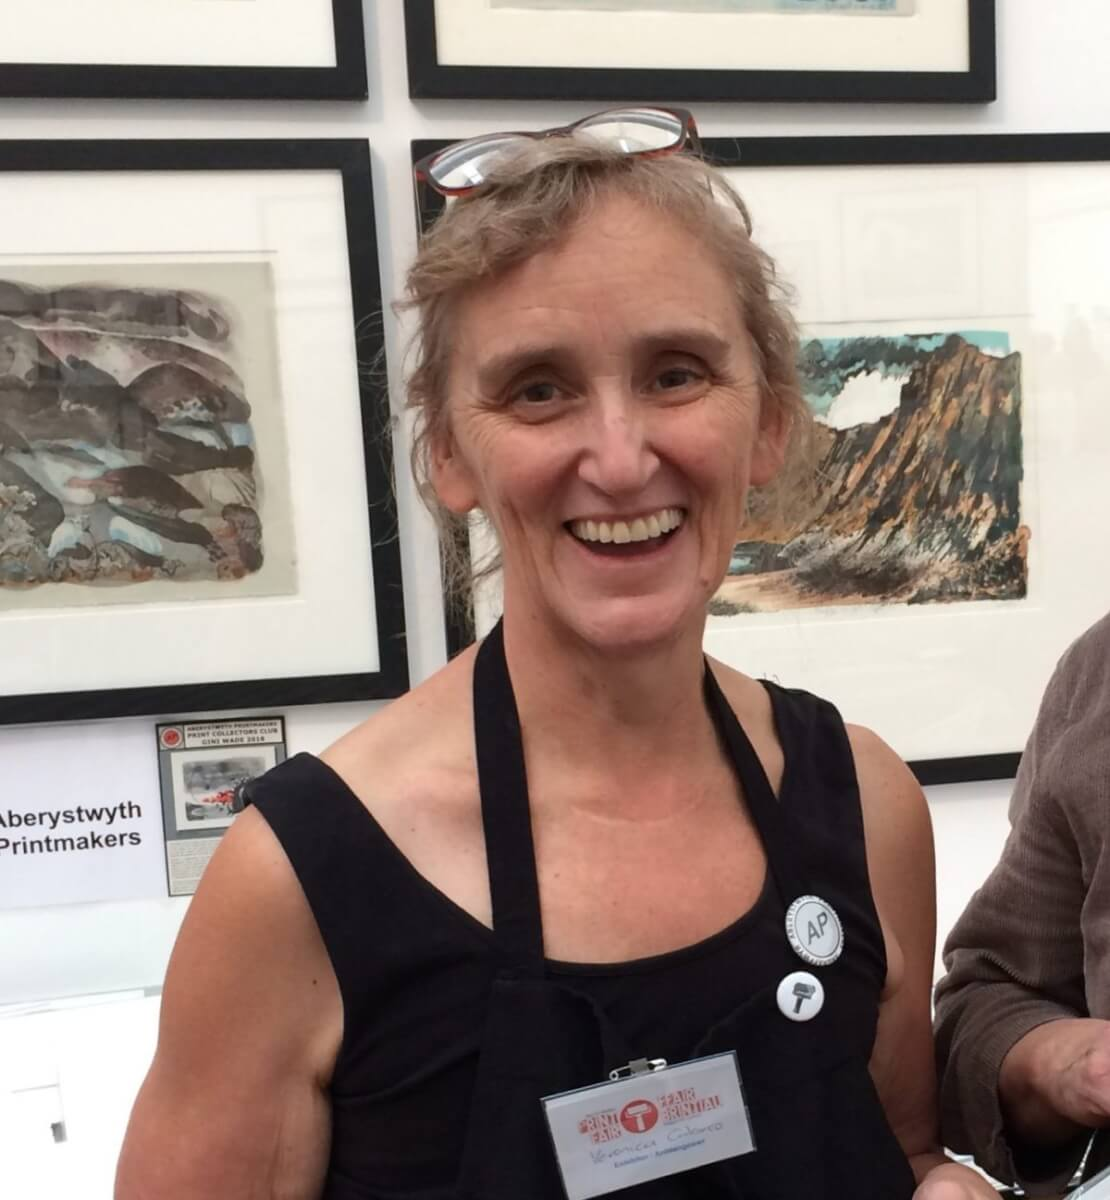 Photo of our client Veronica in an art gallery